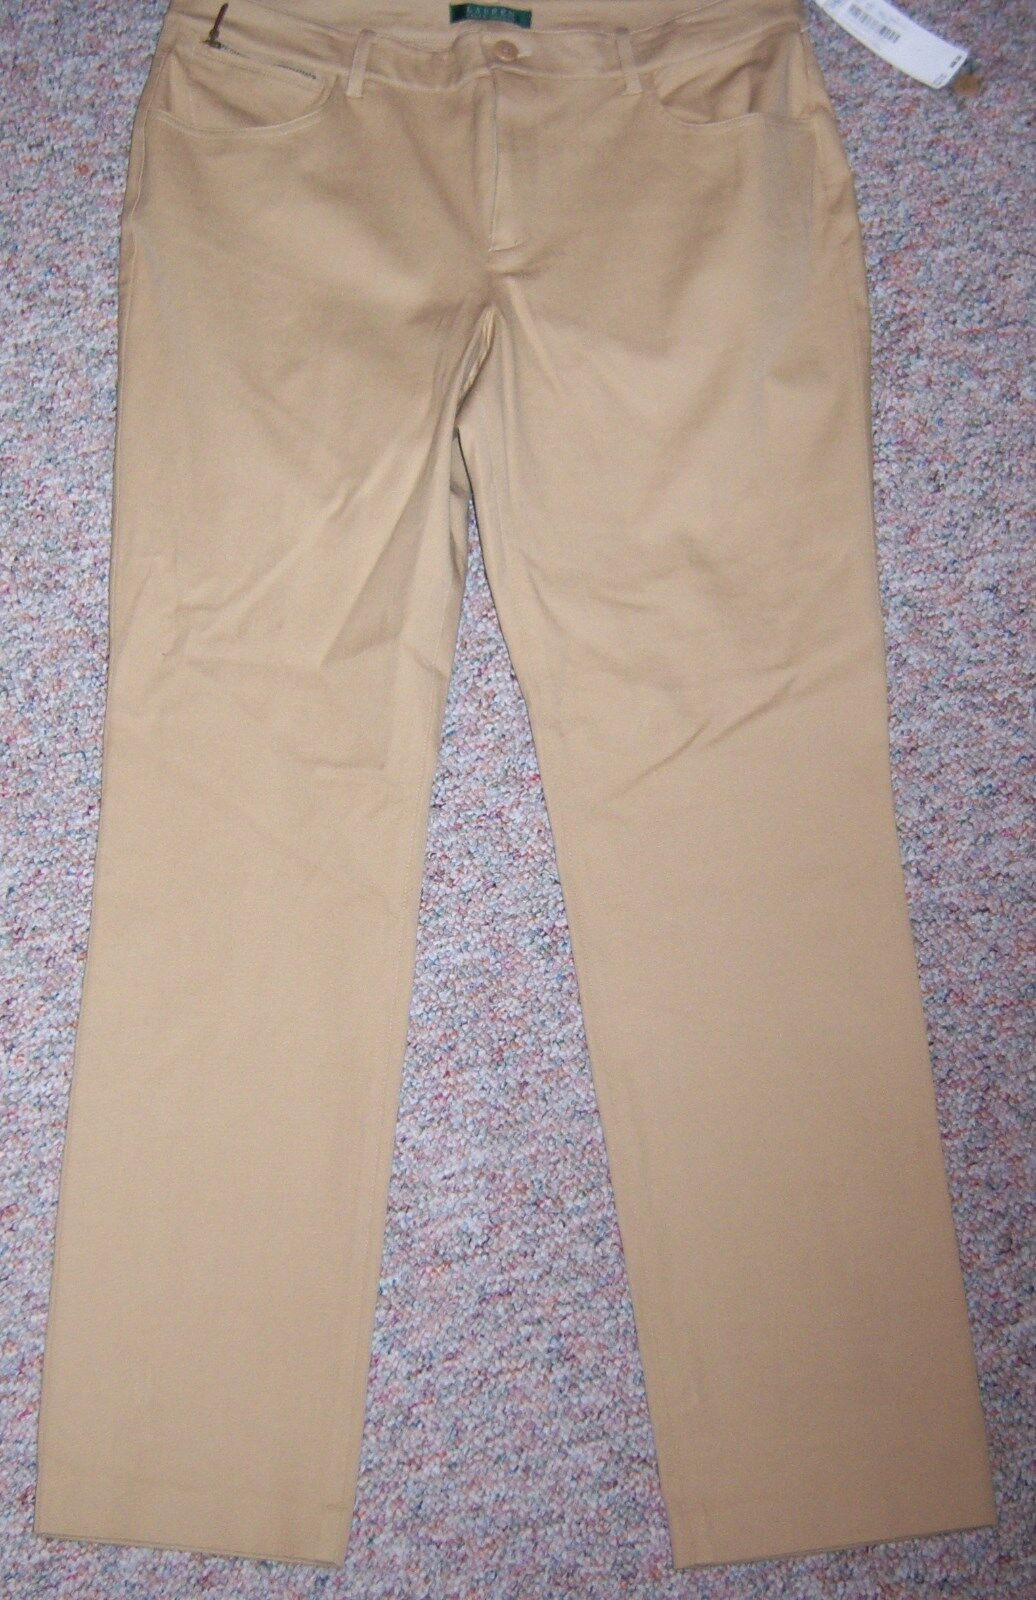 RALPH LAUREN Tan color Slimming Fit Flat Front Pants Size 14 Inseam 31.5 NWT